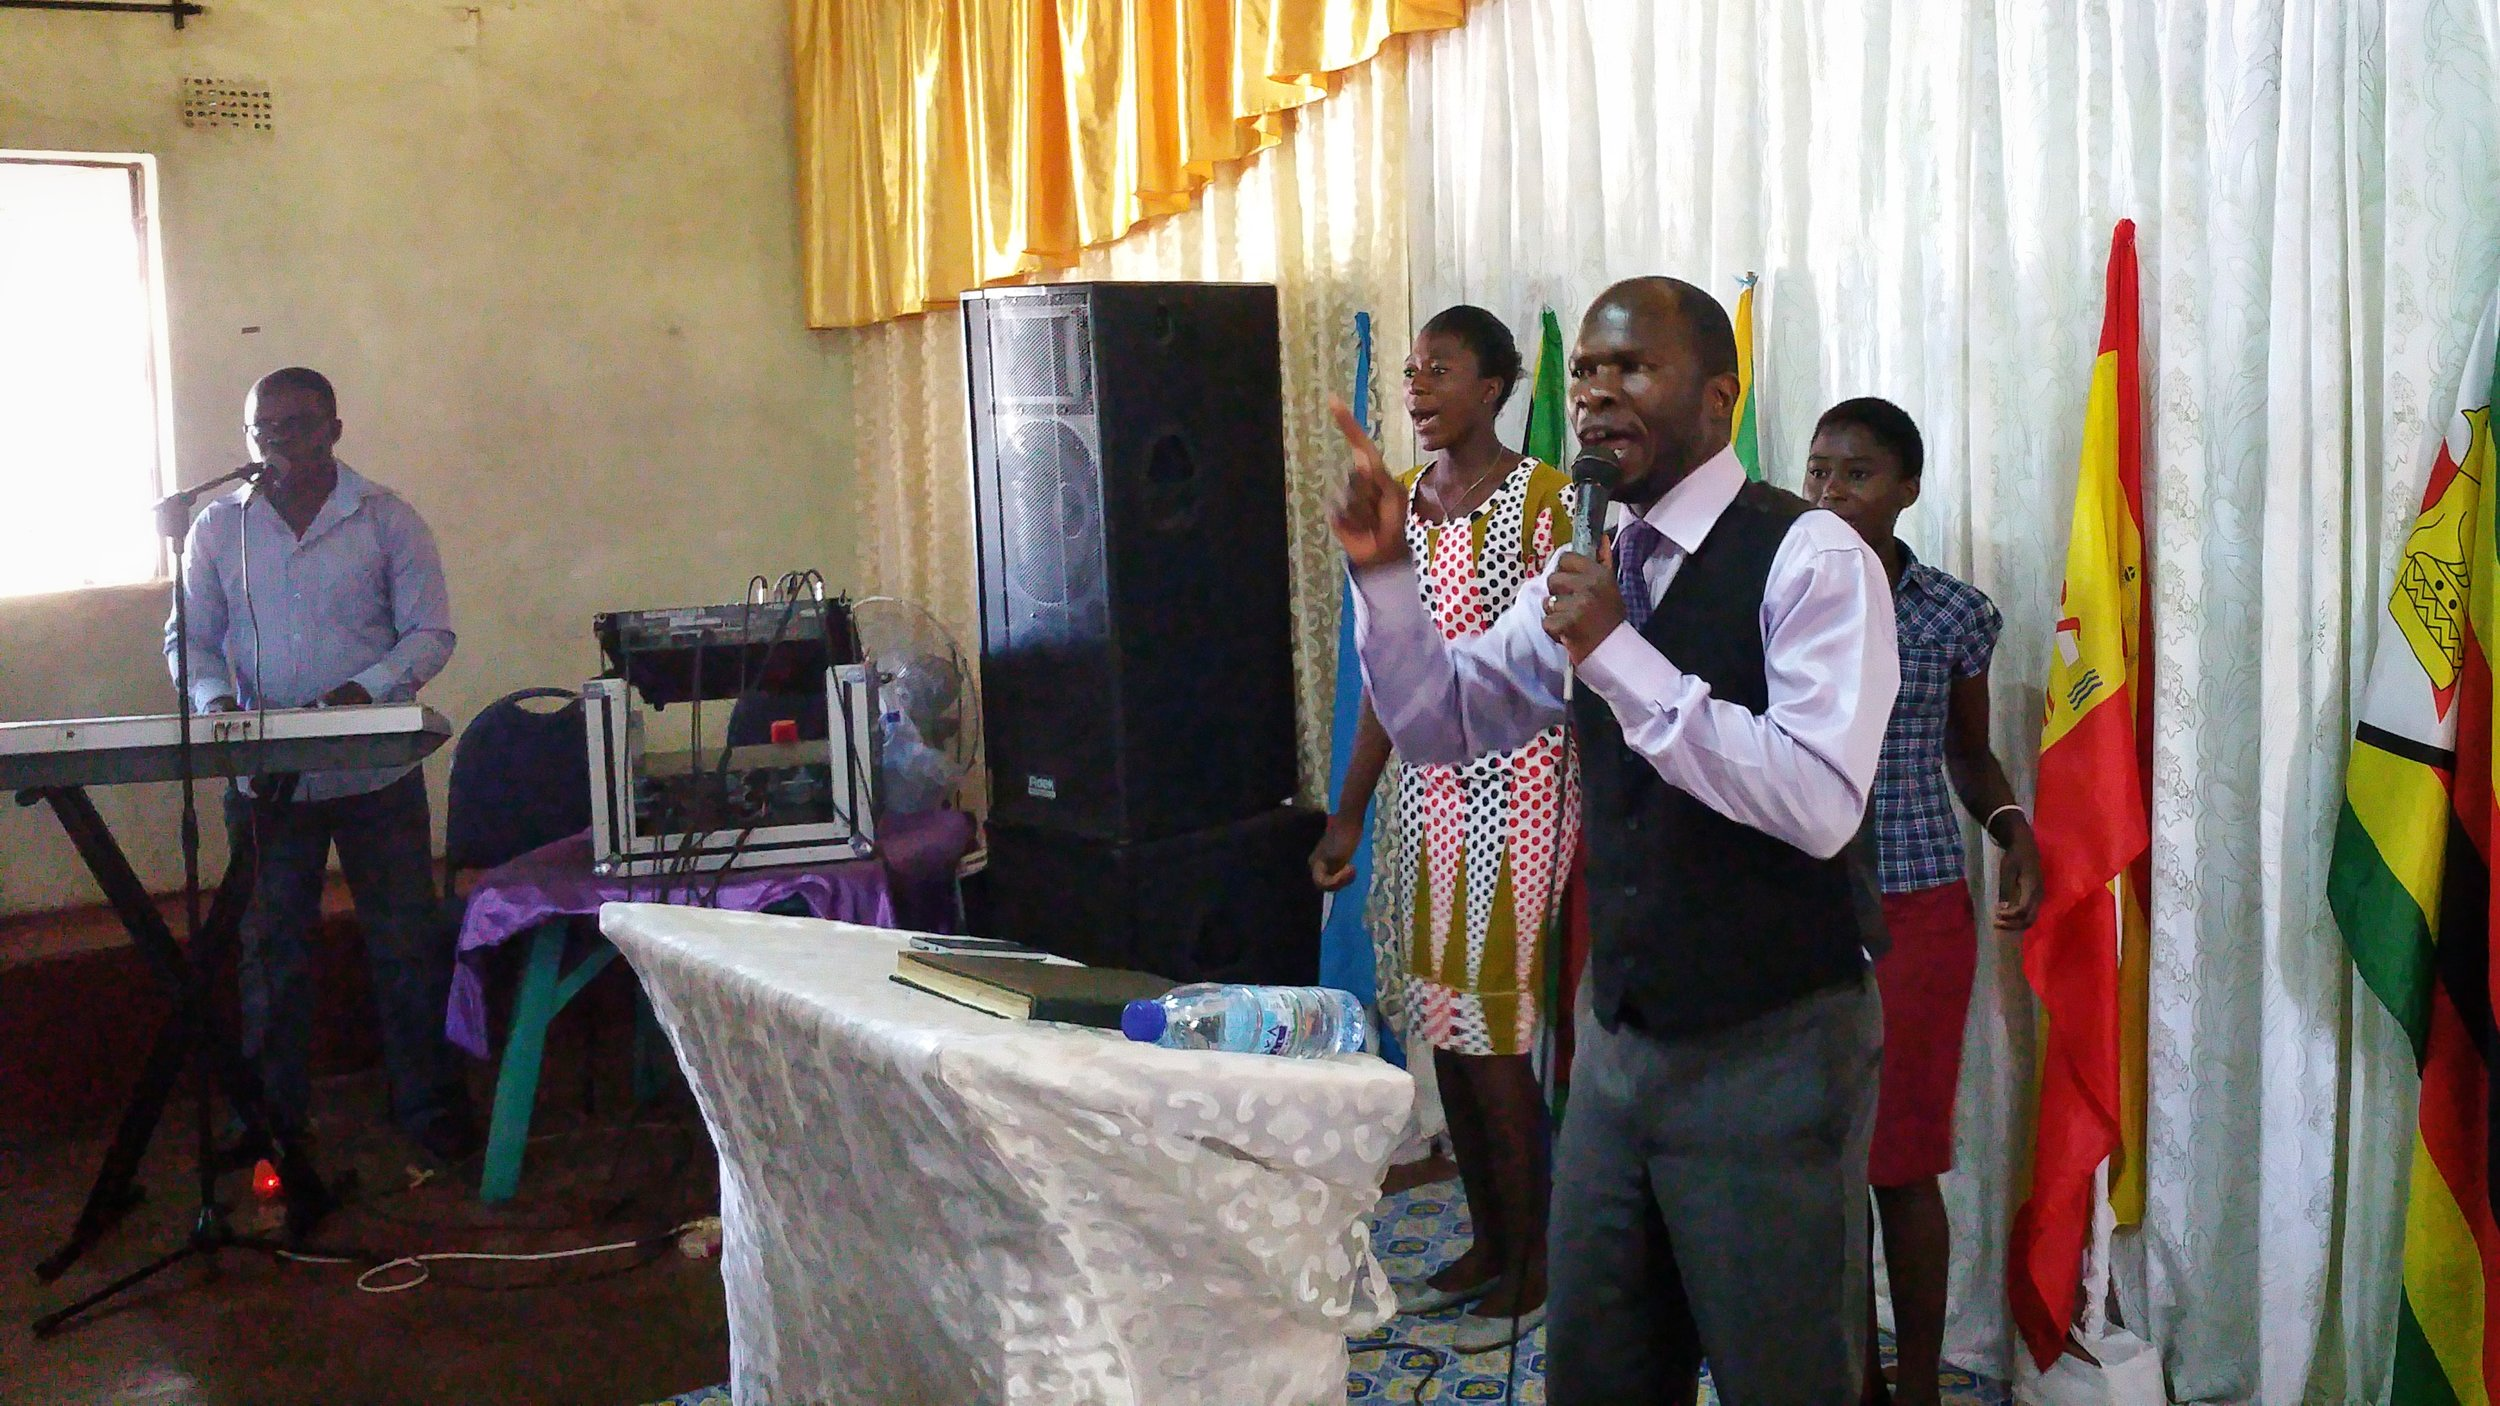 Pastor Fred leads worship at Kingdom Impact Ministry.